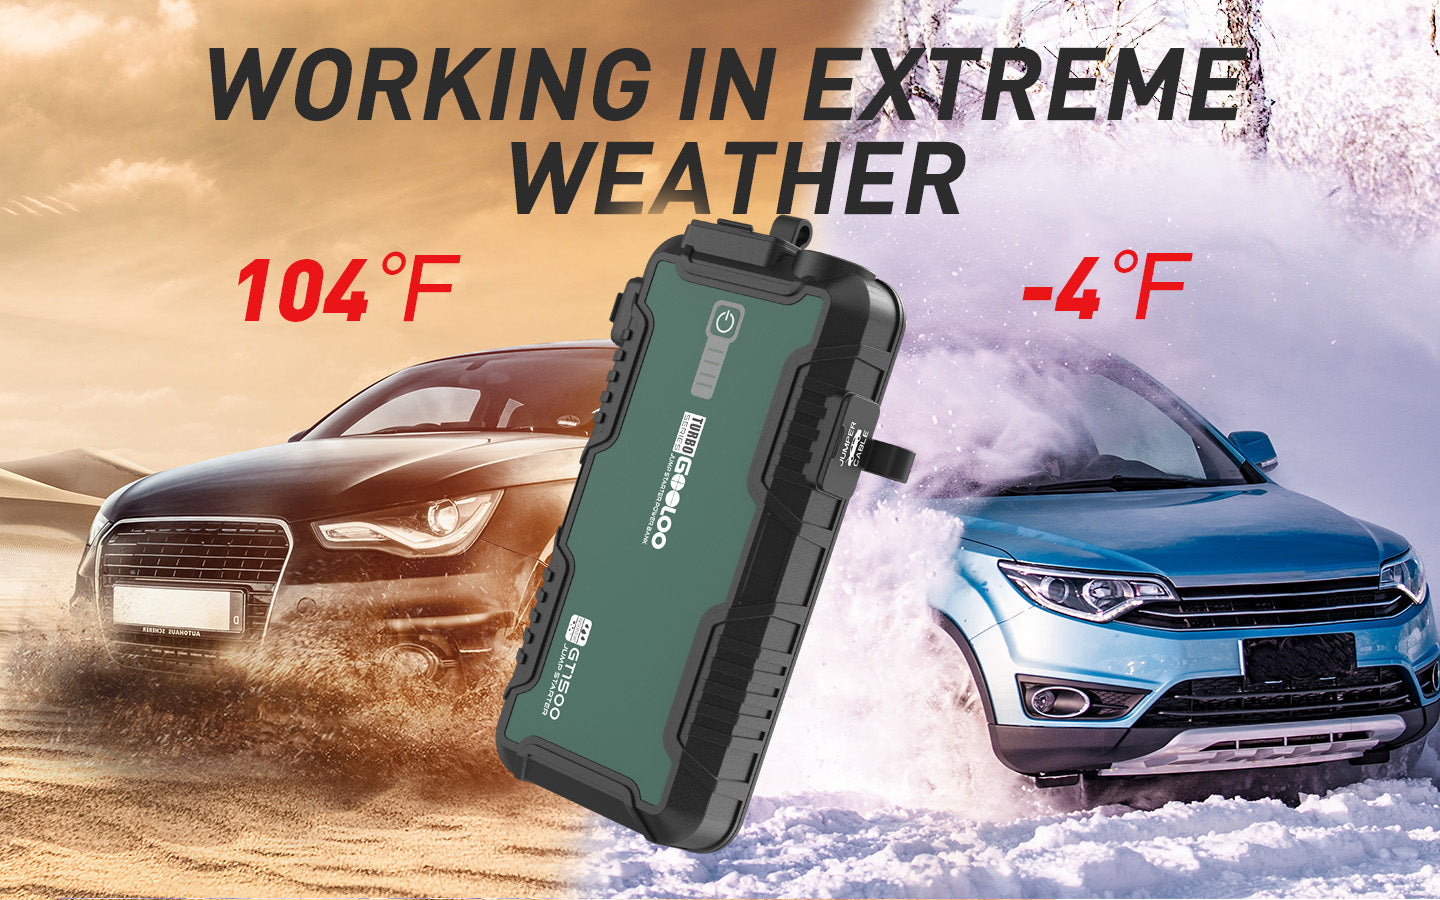 easy to jump start a car in winter work in extreme weather